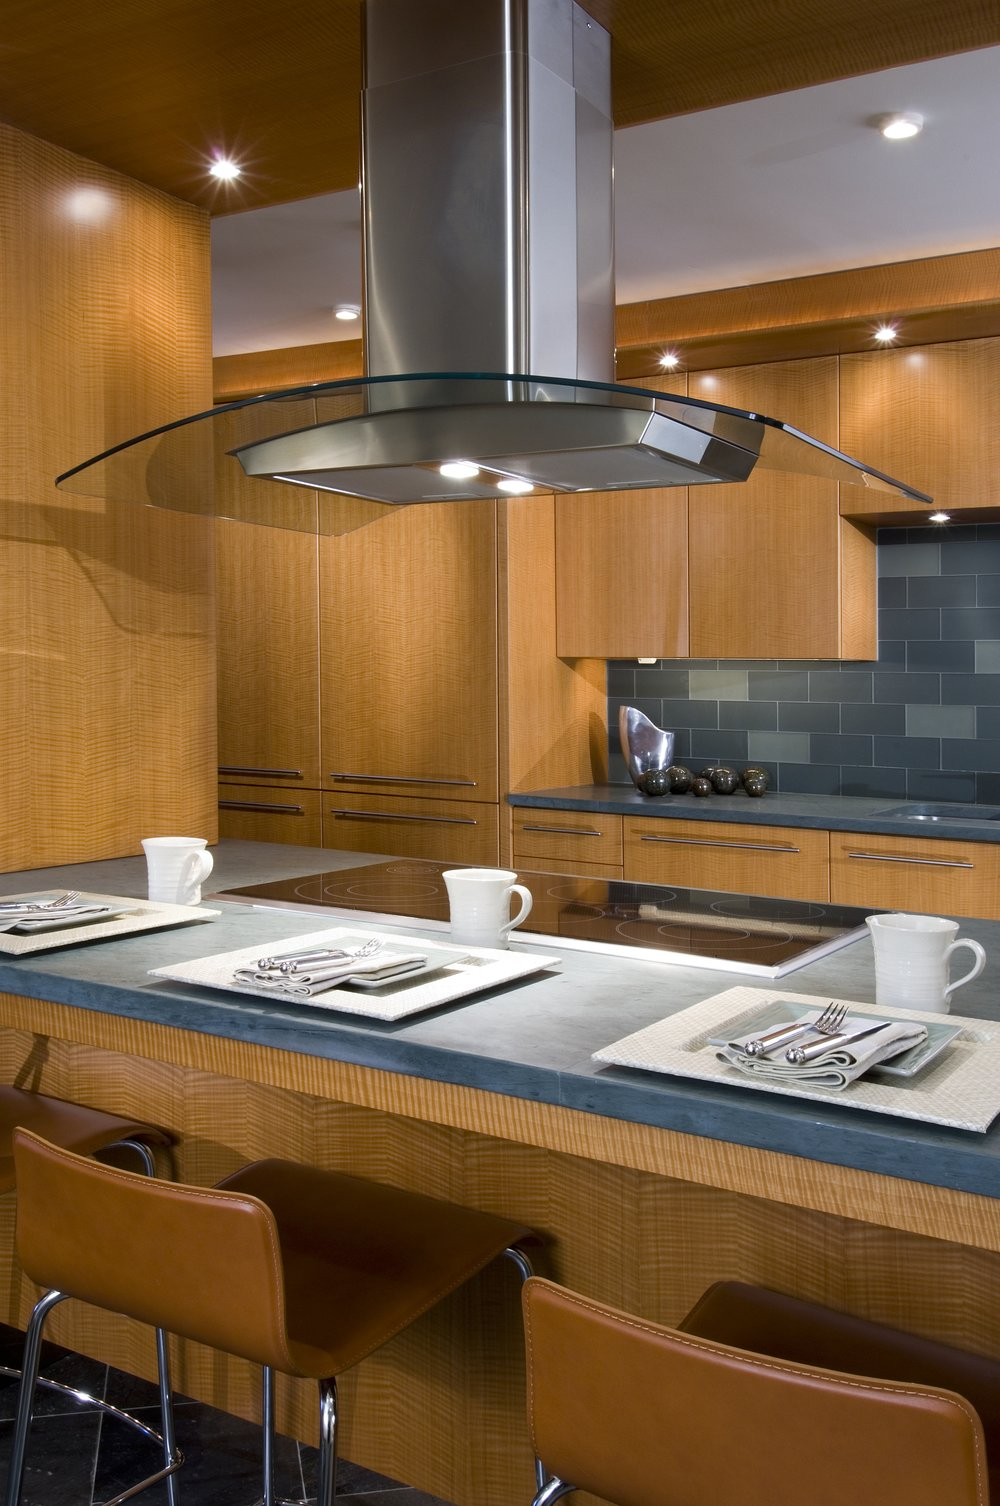 KBC_kitchen_bath_concepts_Kitchen_134.jpg